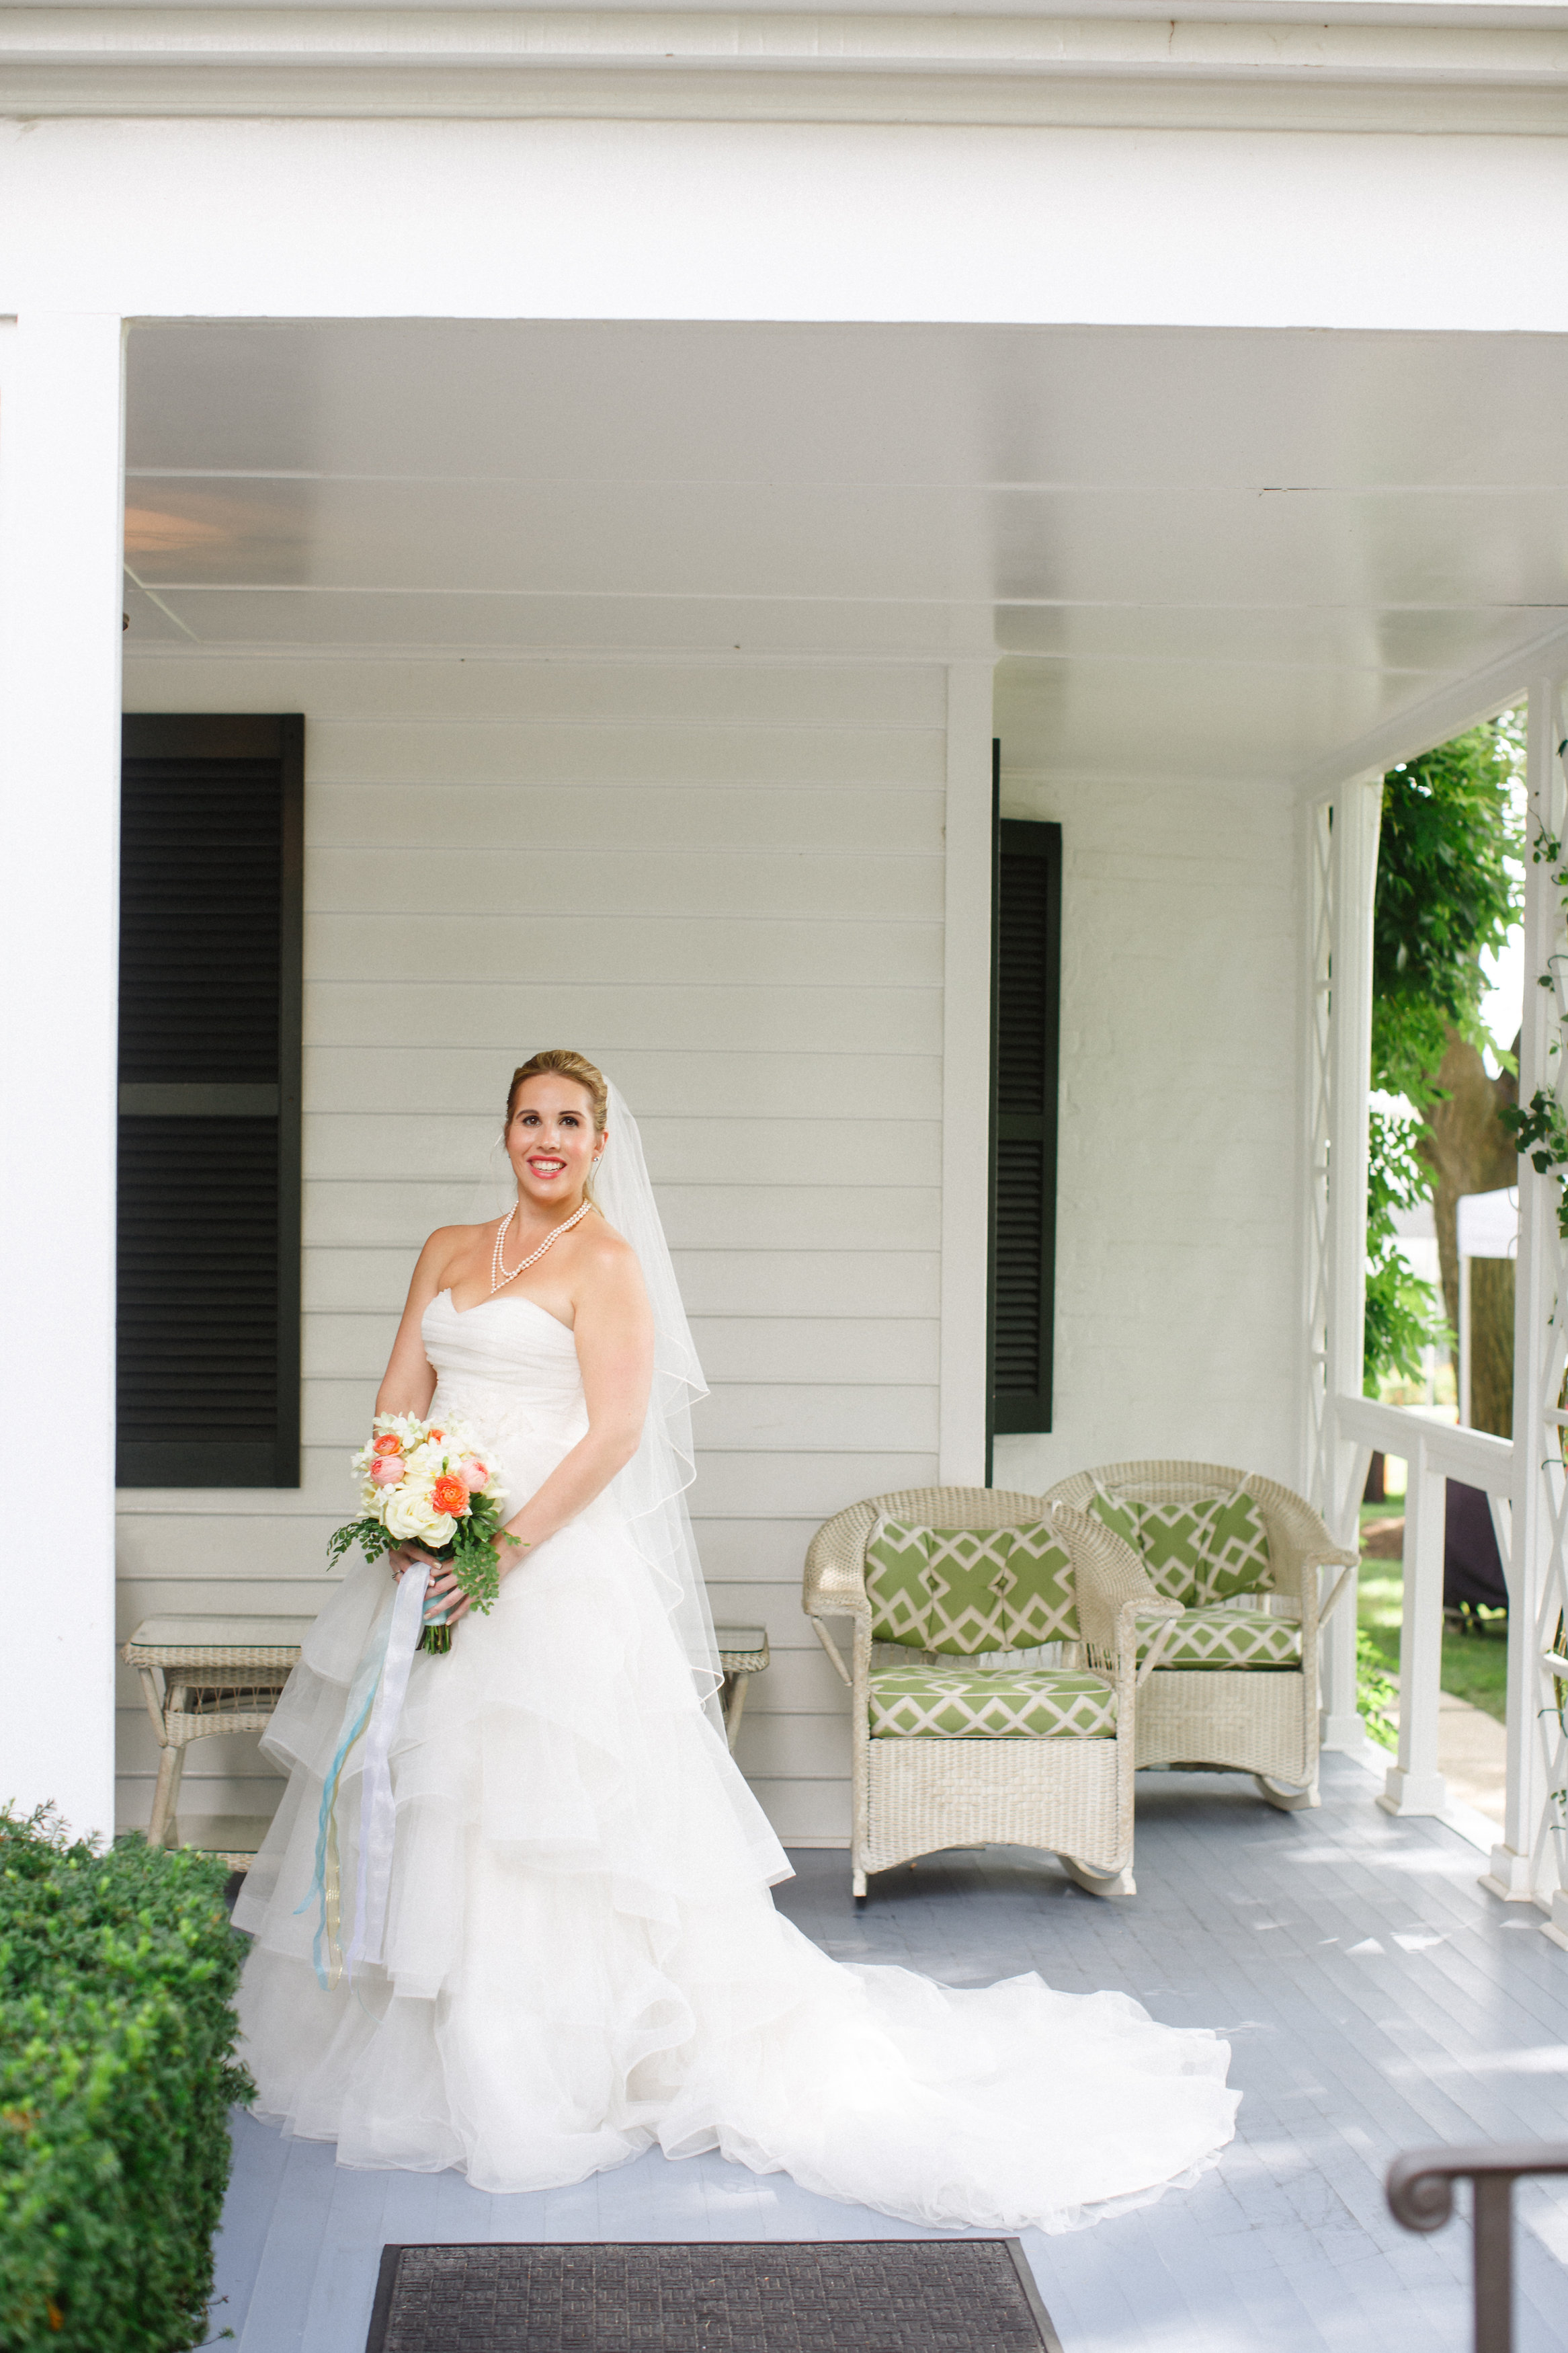 Vness-Photography-Chevy-Chase-Country-Club-A&R-Wedding-203.jpg